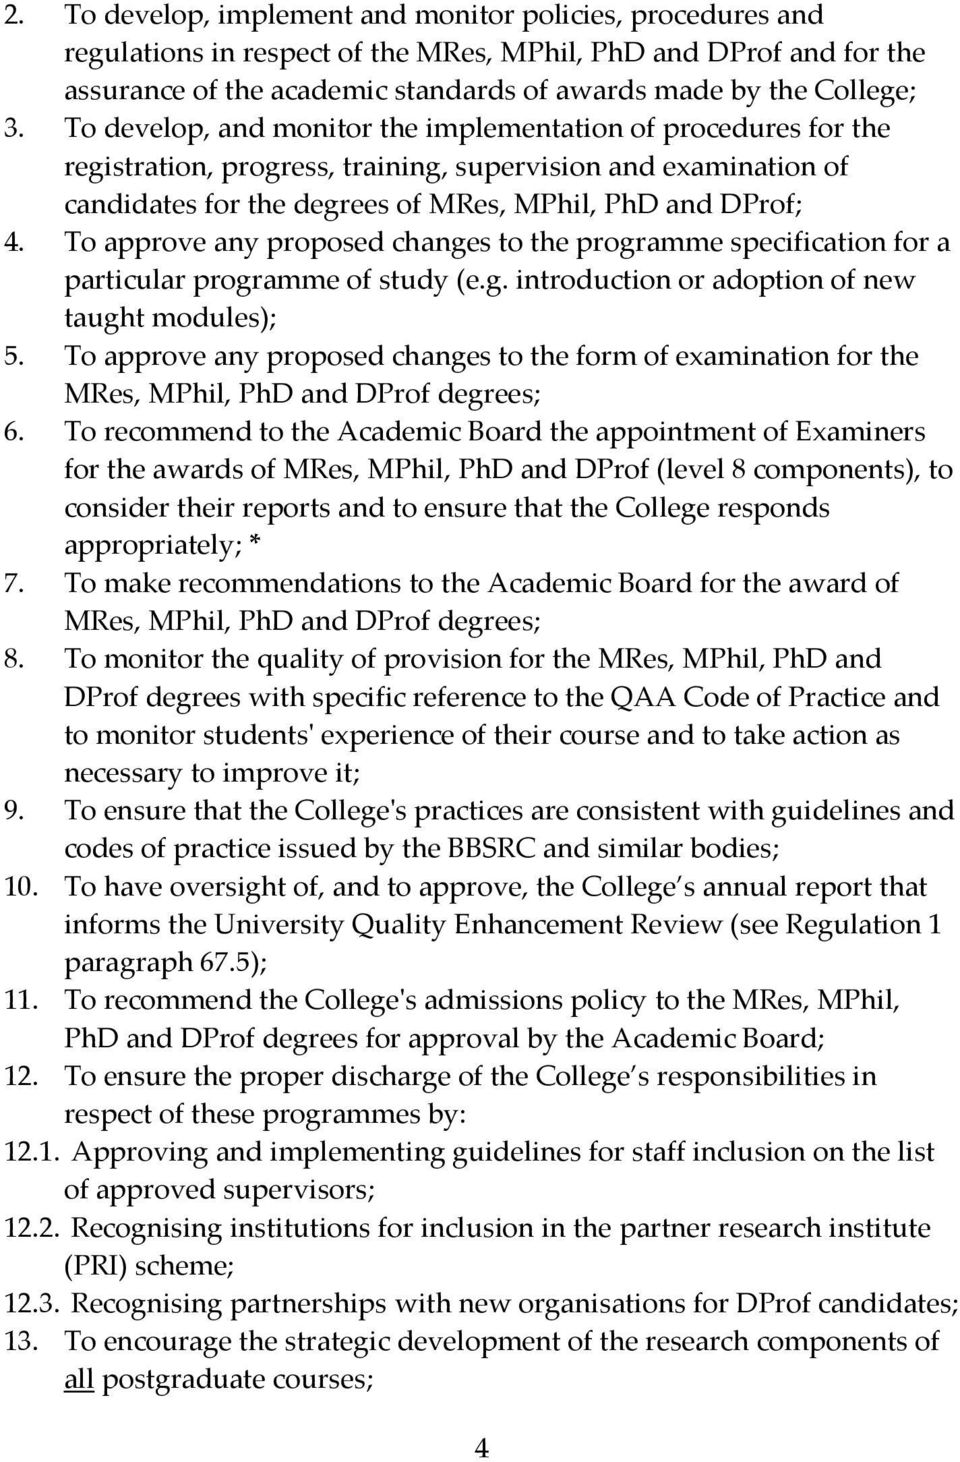 To approve any proposed changes to the programme specification for a particular programme of study (e.g. introduction or adoption of new taught modules); 5.